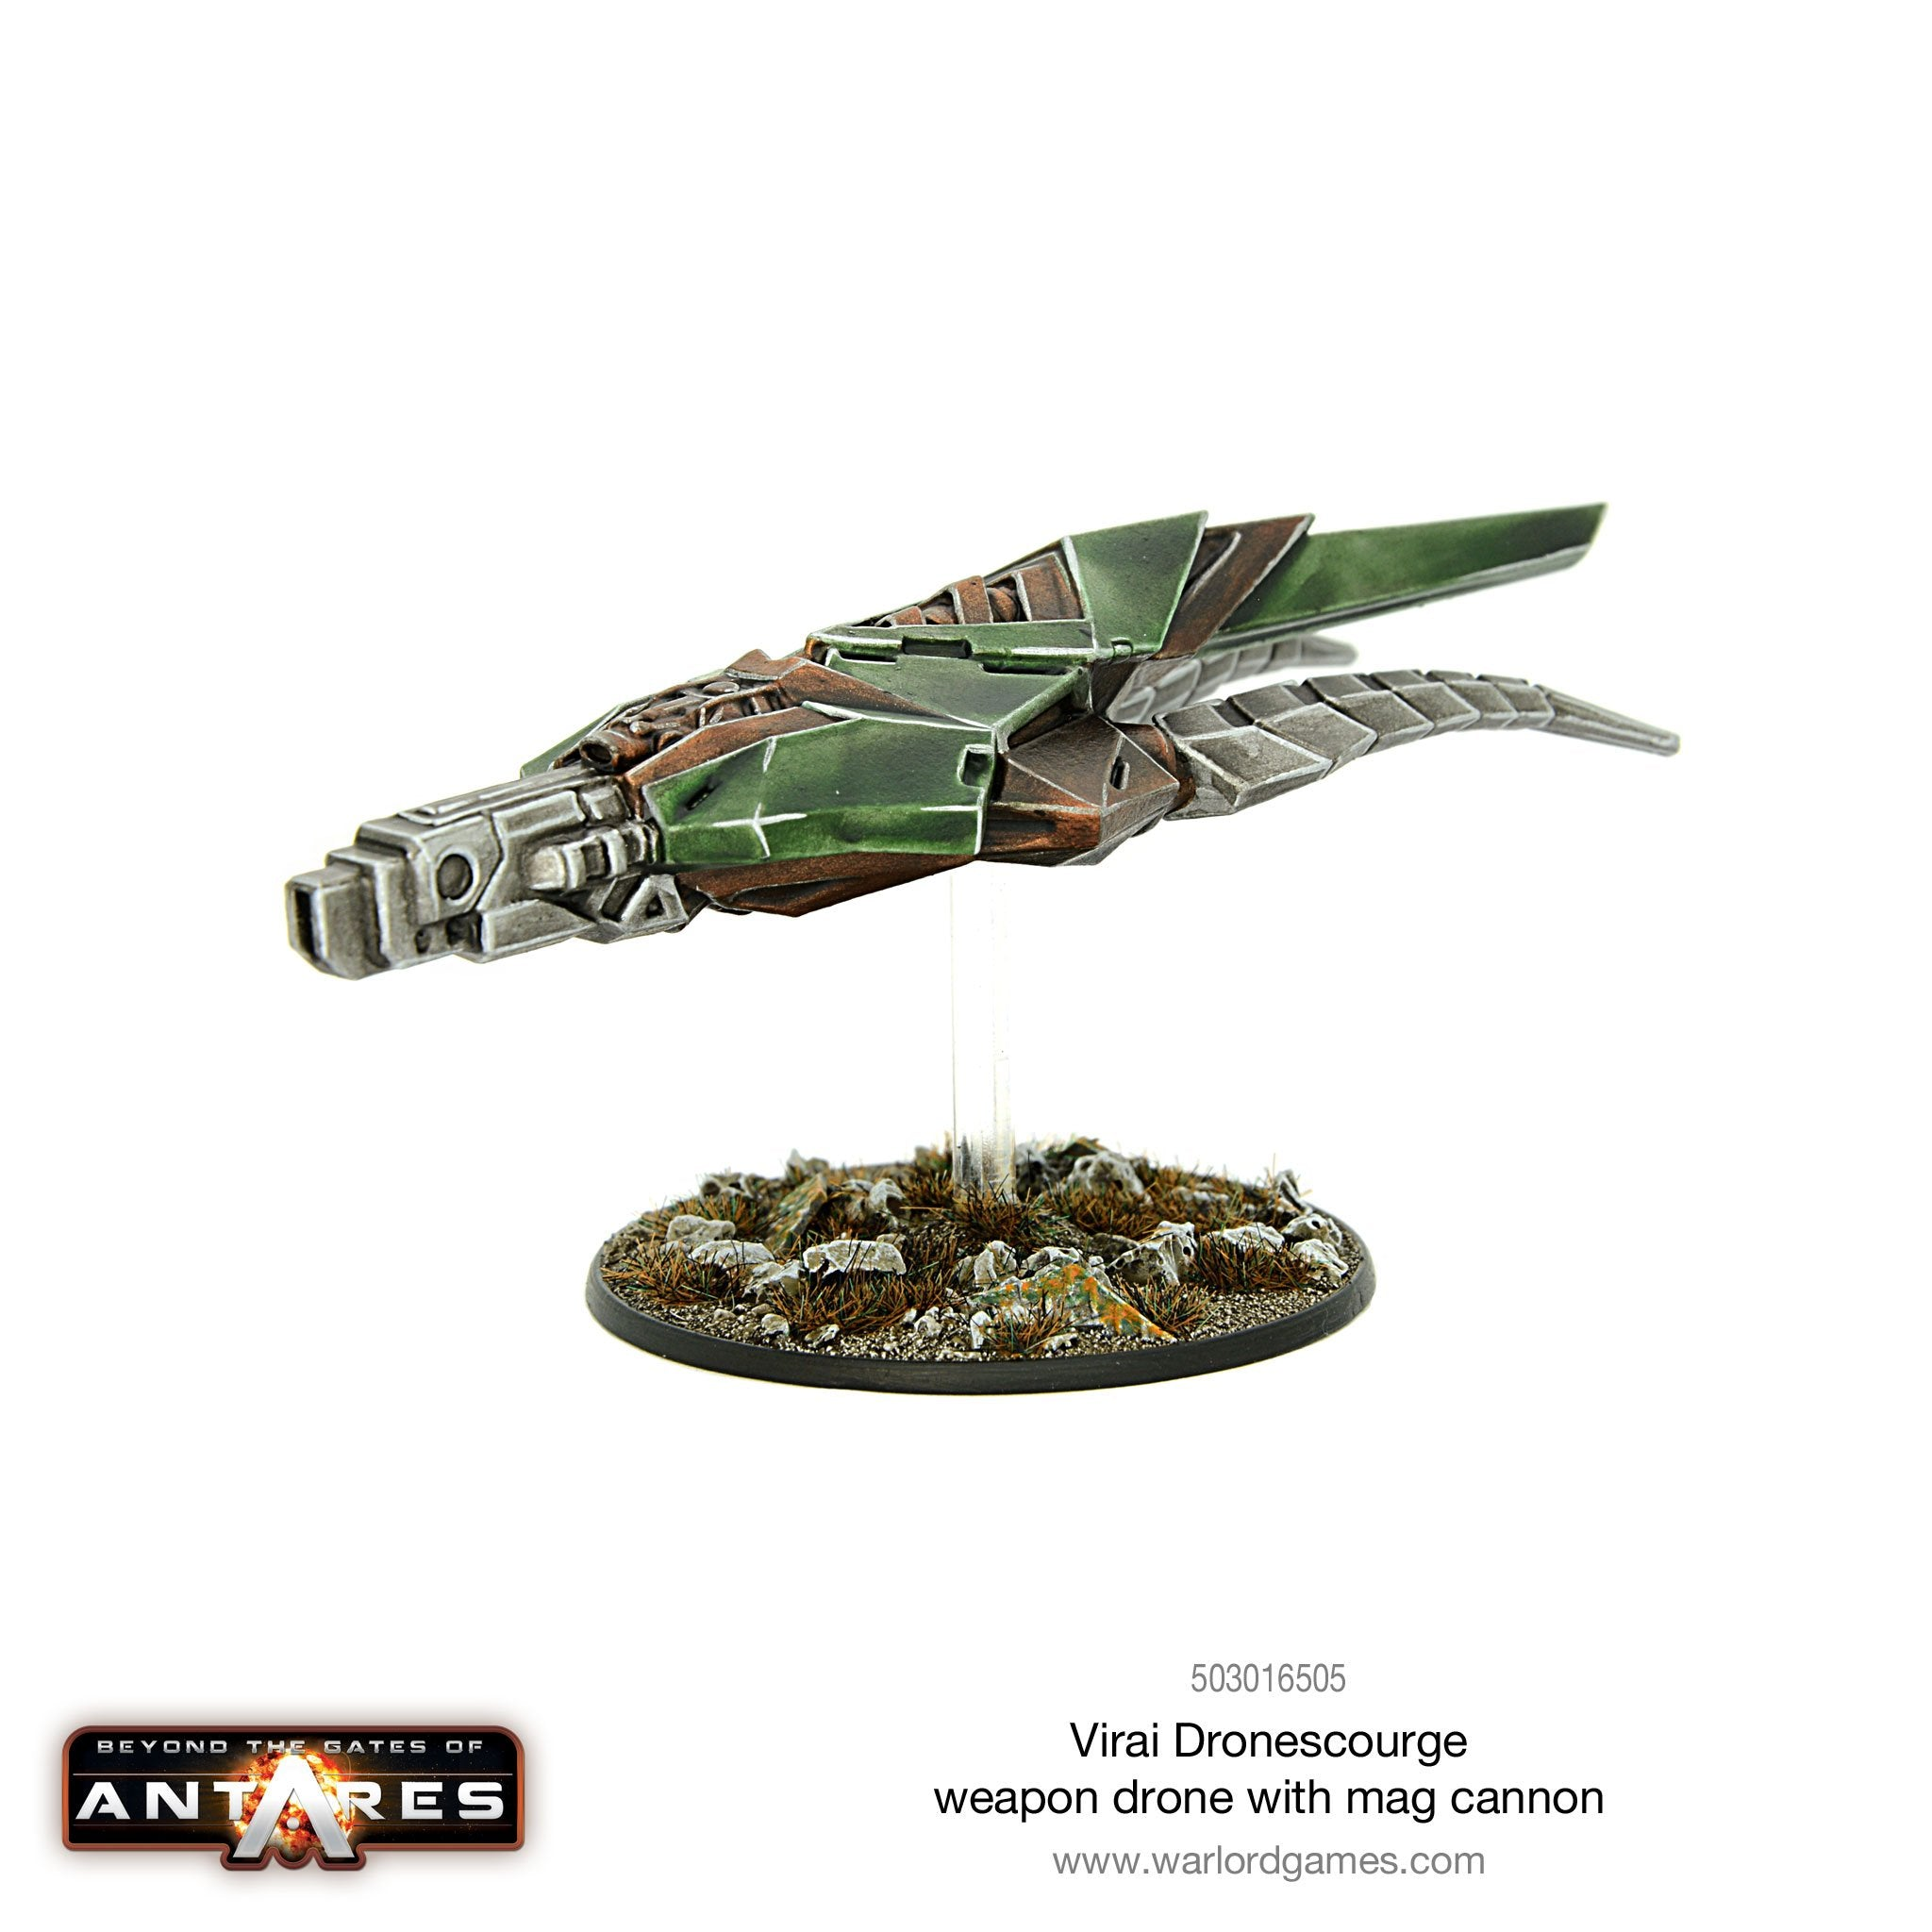 Virai Dronescourge weapon drone with mag cannon